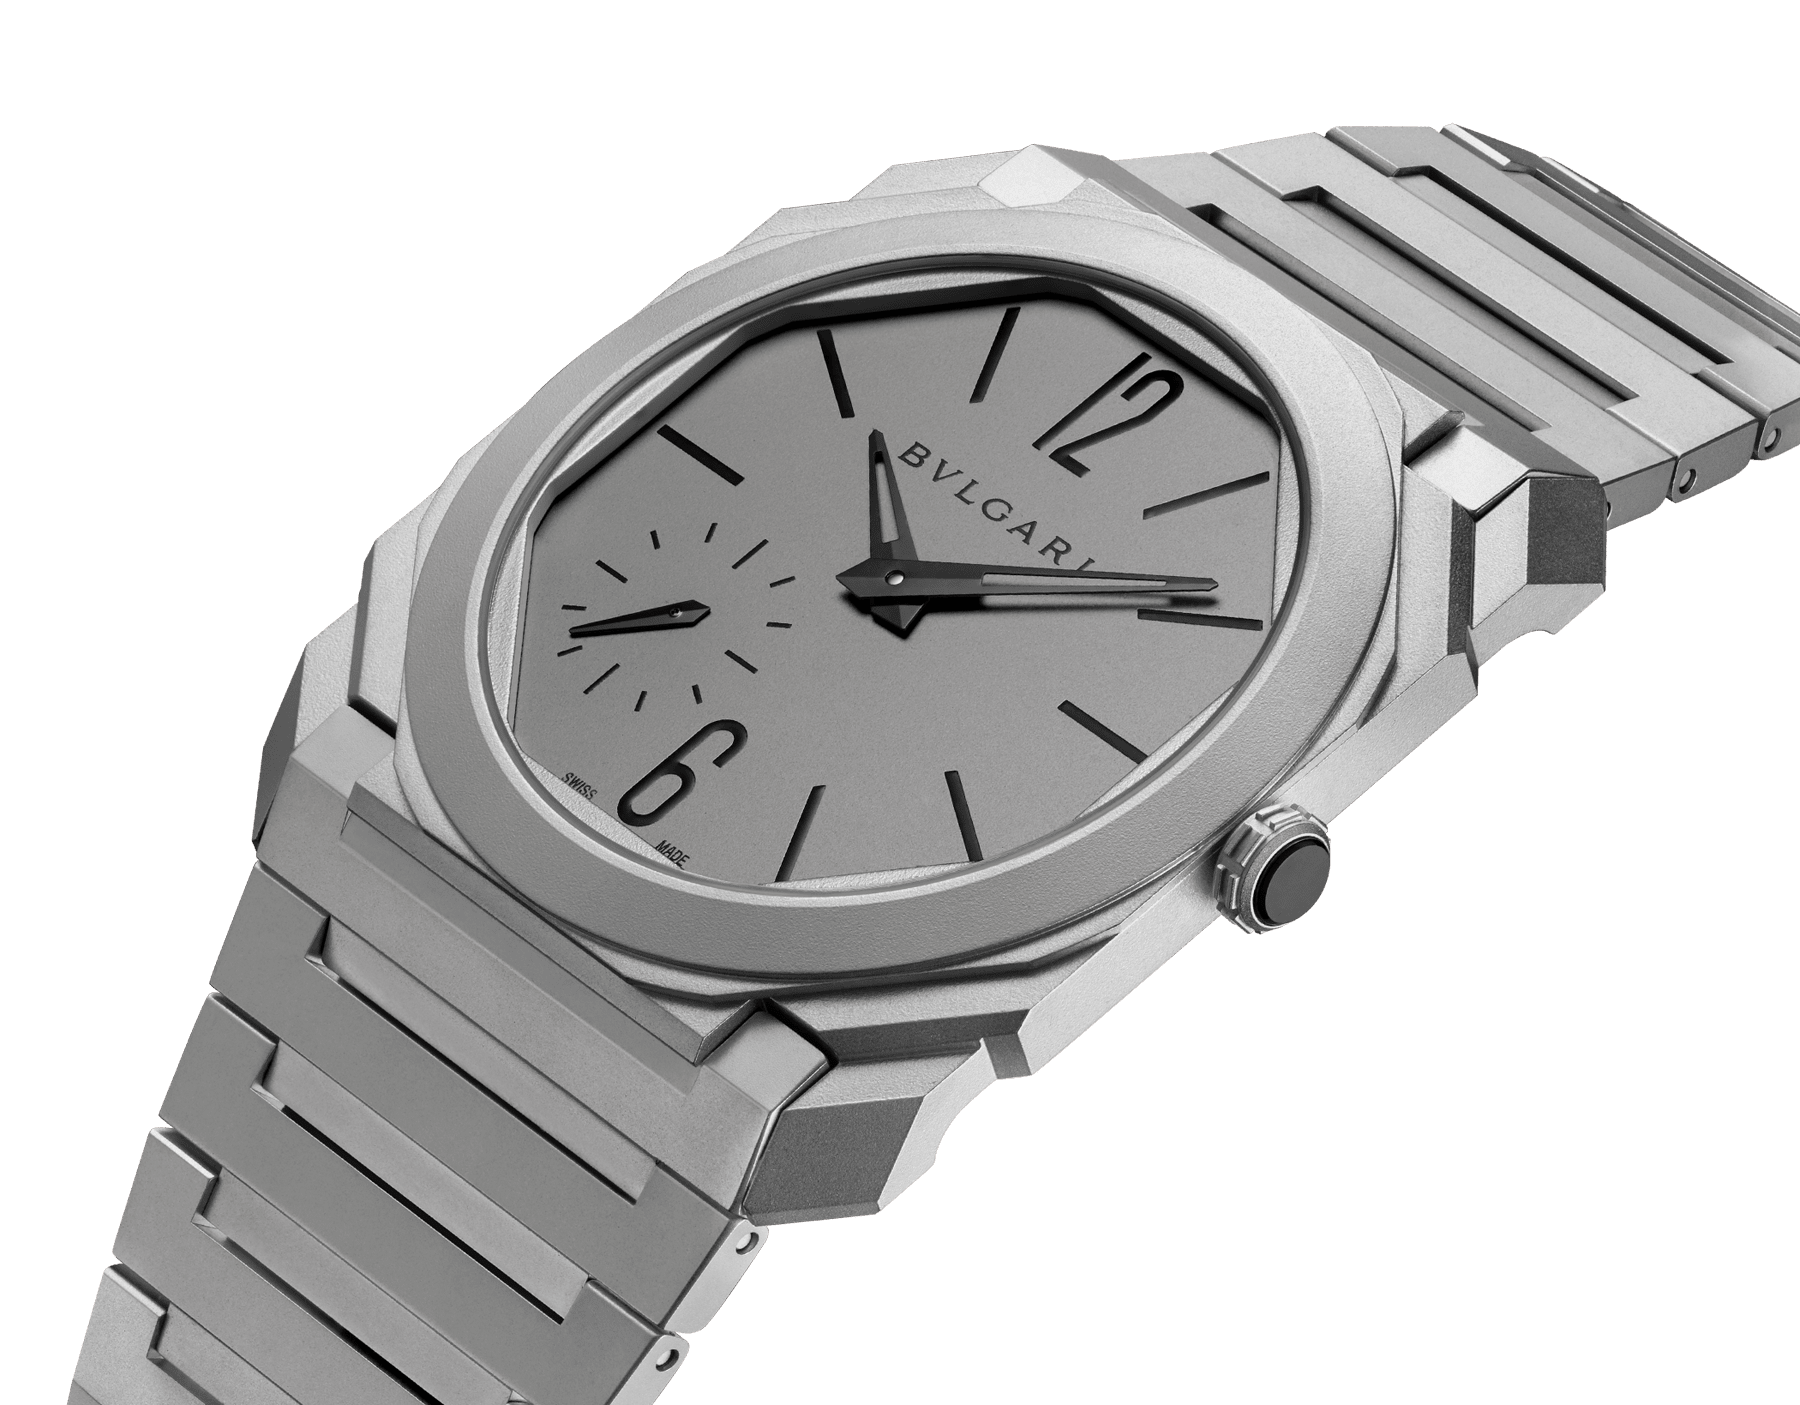 Octo Finissimo Automatic watch in titanium case and bracelet with extra thin mechanical manufacture movement, automatic winding, small seconds and titanium dial. 102713 image 2